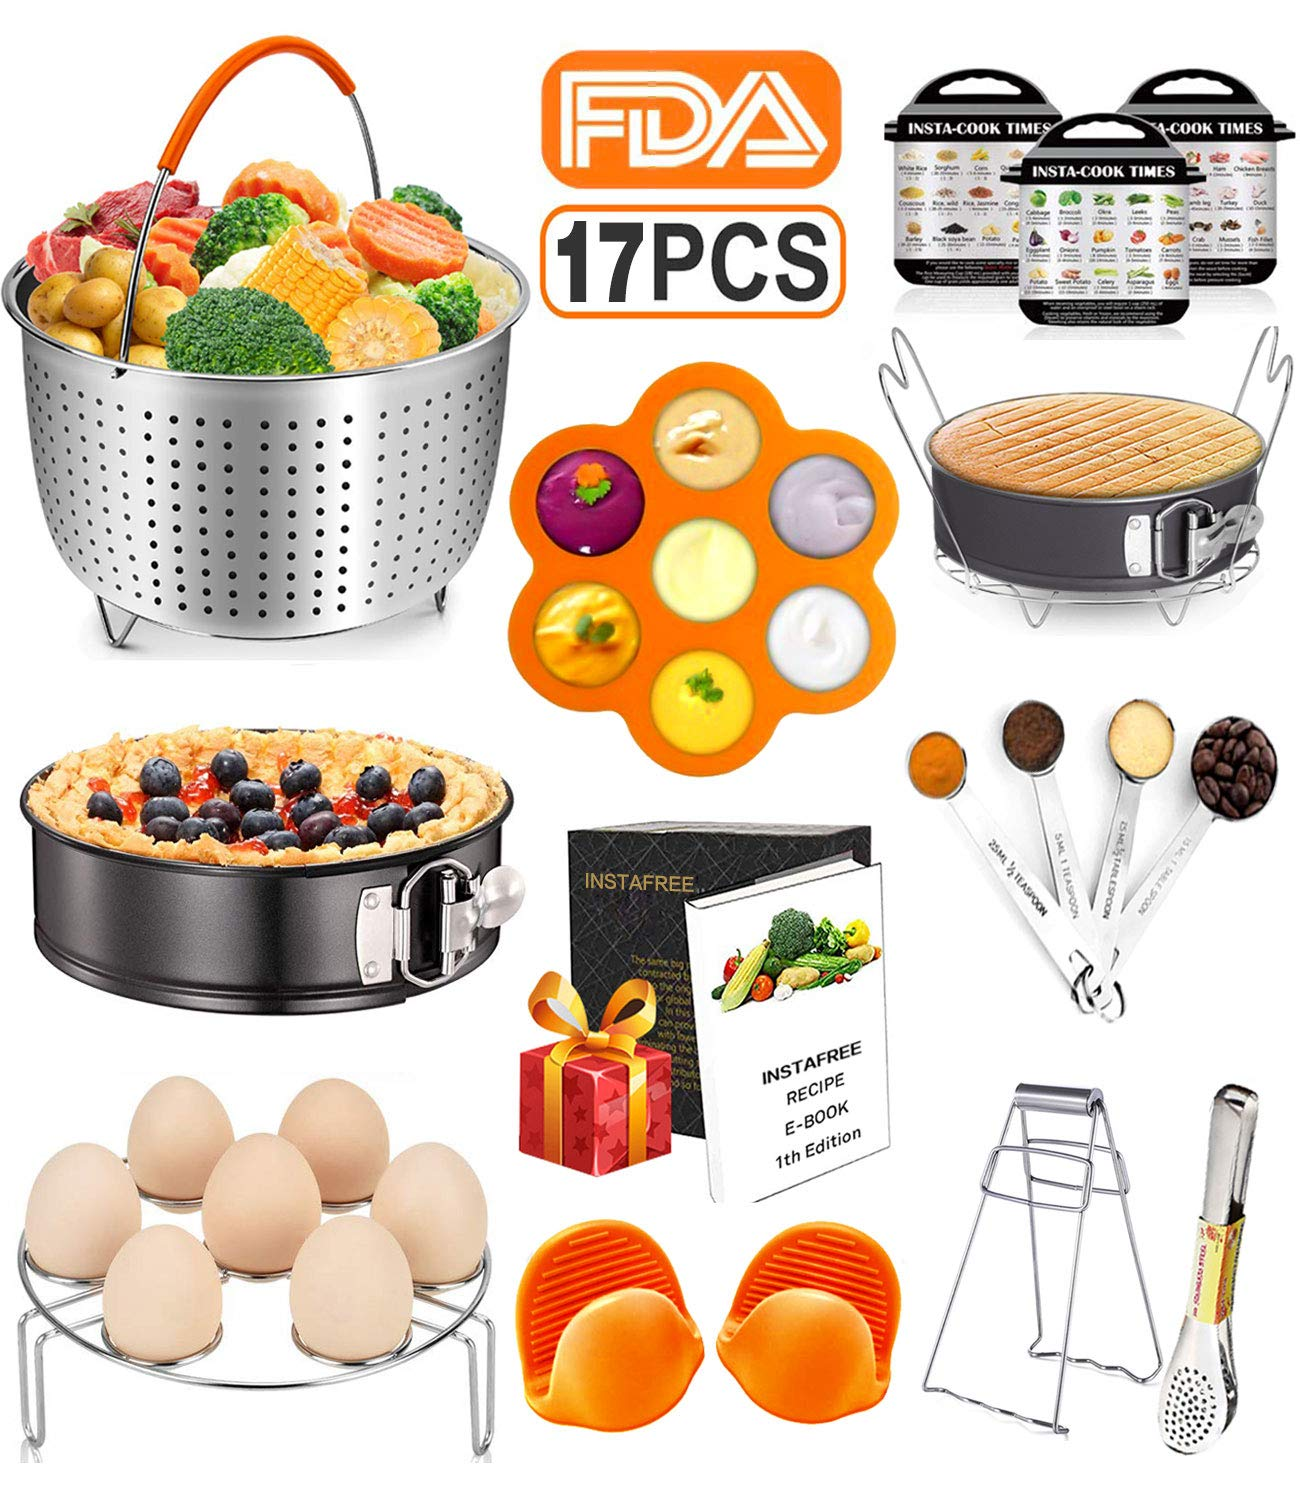 17 Pcs Instant Pot Accessories Set Compatible with 6 8 Qt, Pressure Cooker Accessories with Steamer Basket, Cake Pan, Rack, Egg Bites Mold, Spoon, Magnets, Bowl Clip, Tongs, Gloves, Ebook